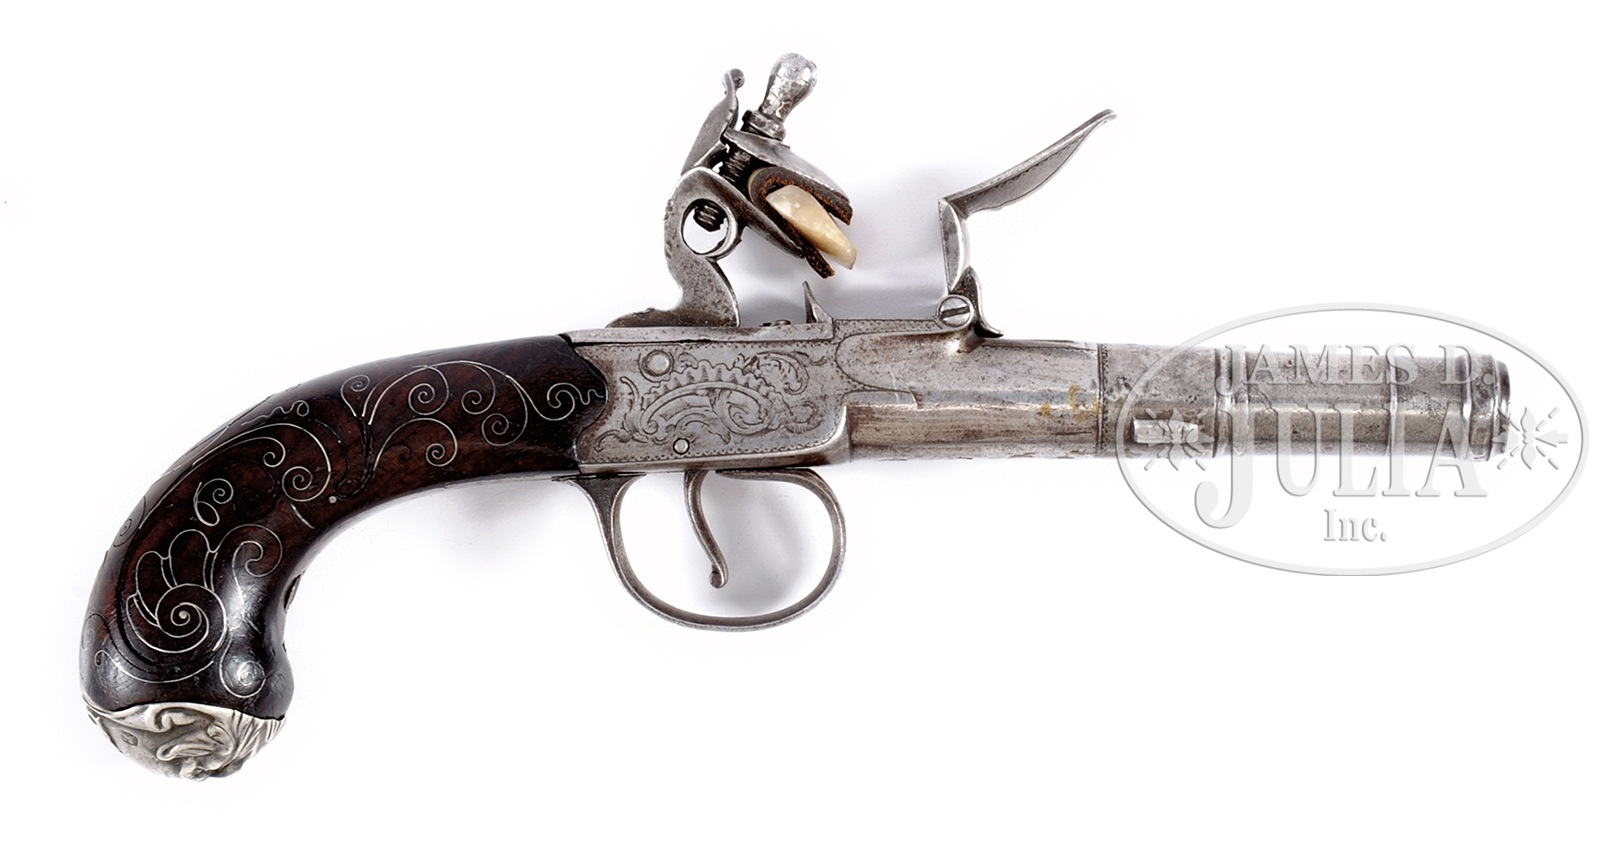 SILVER MOUNTED ENGLISH FLINTLOCK PISTOL BY THOMAS ARCHER